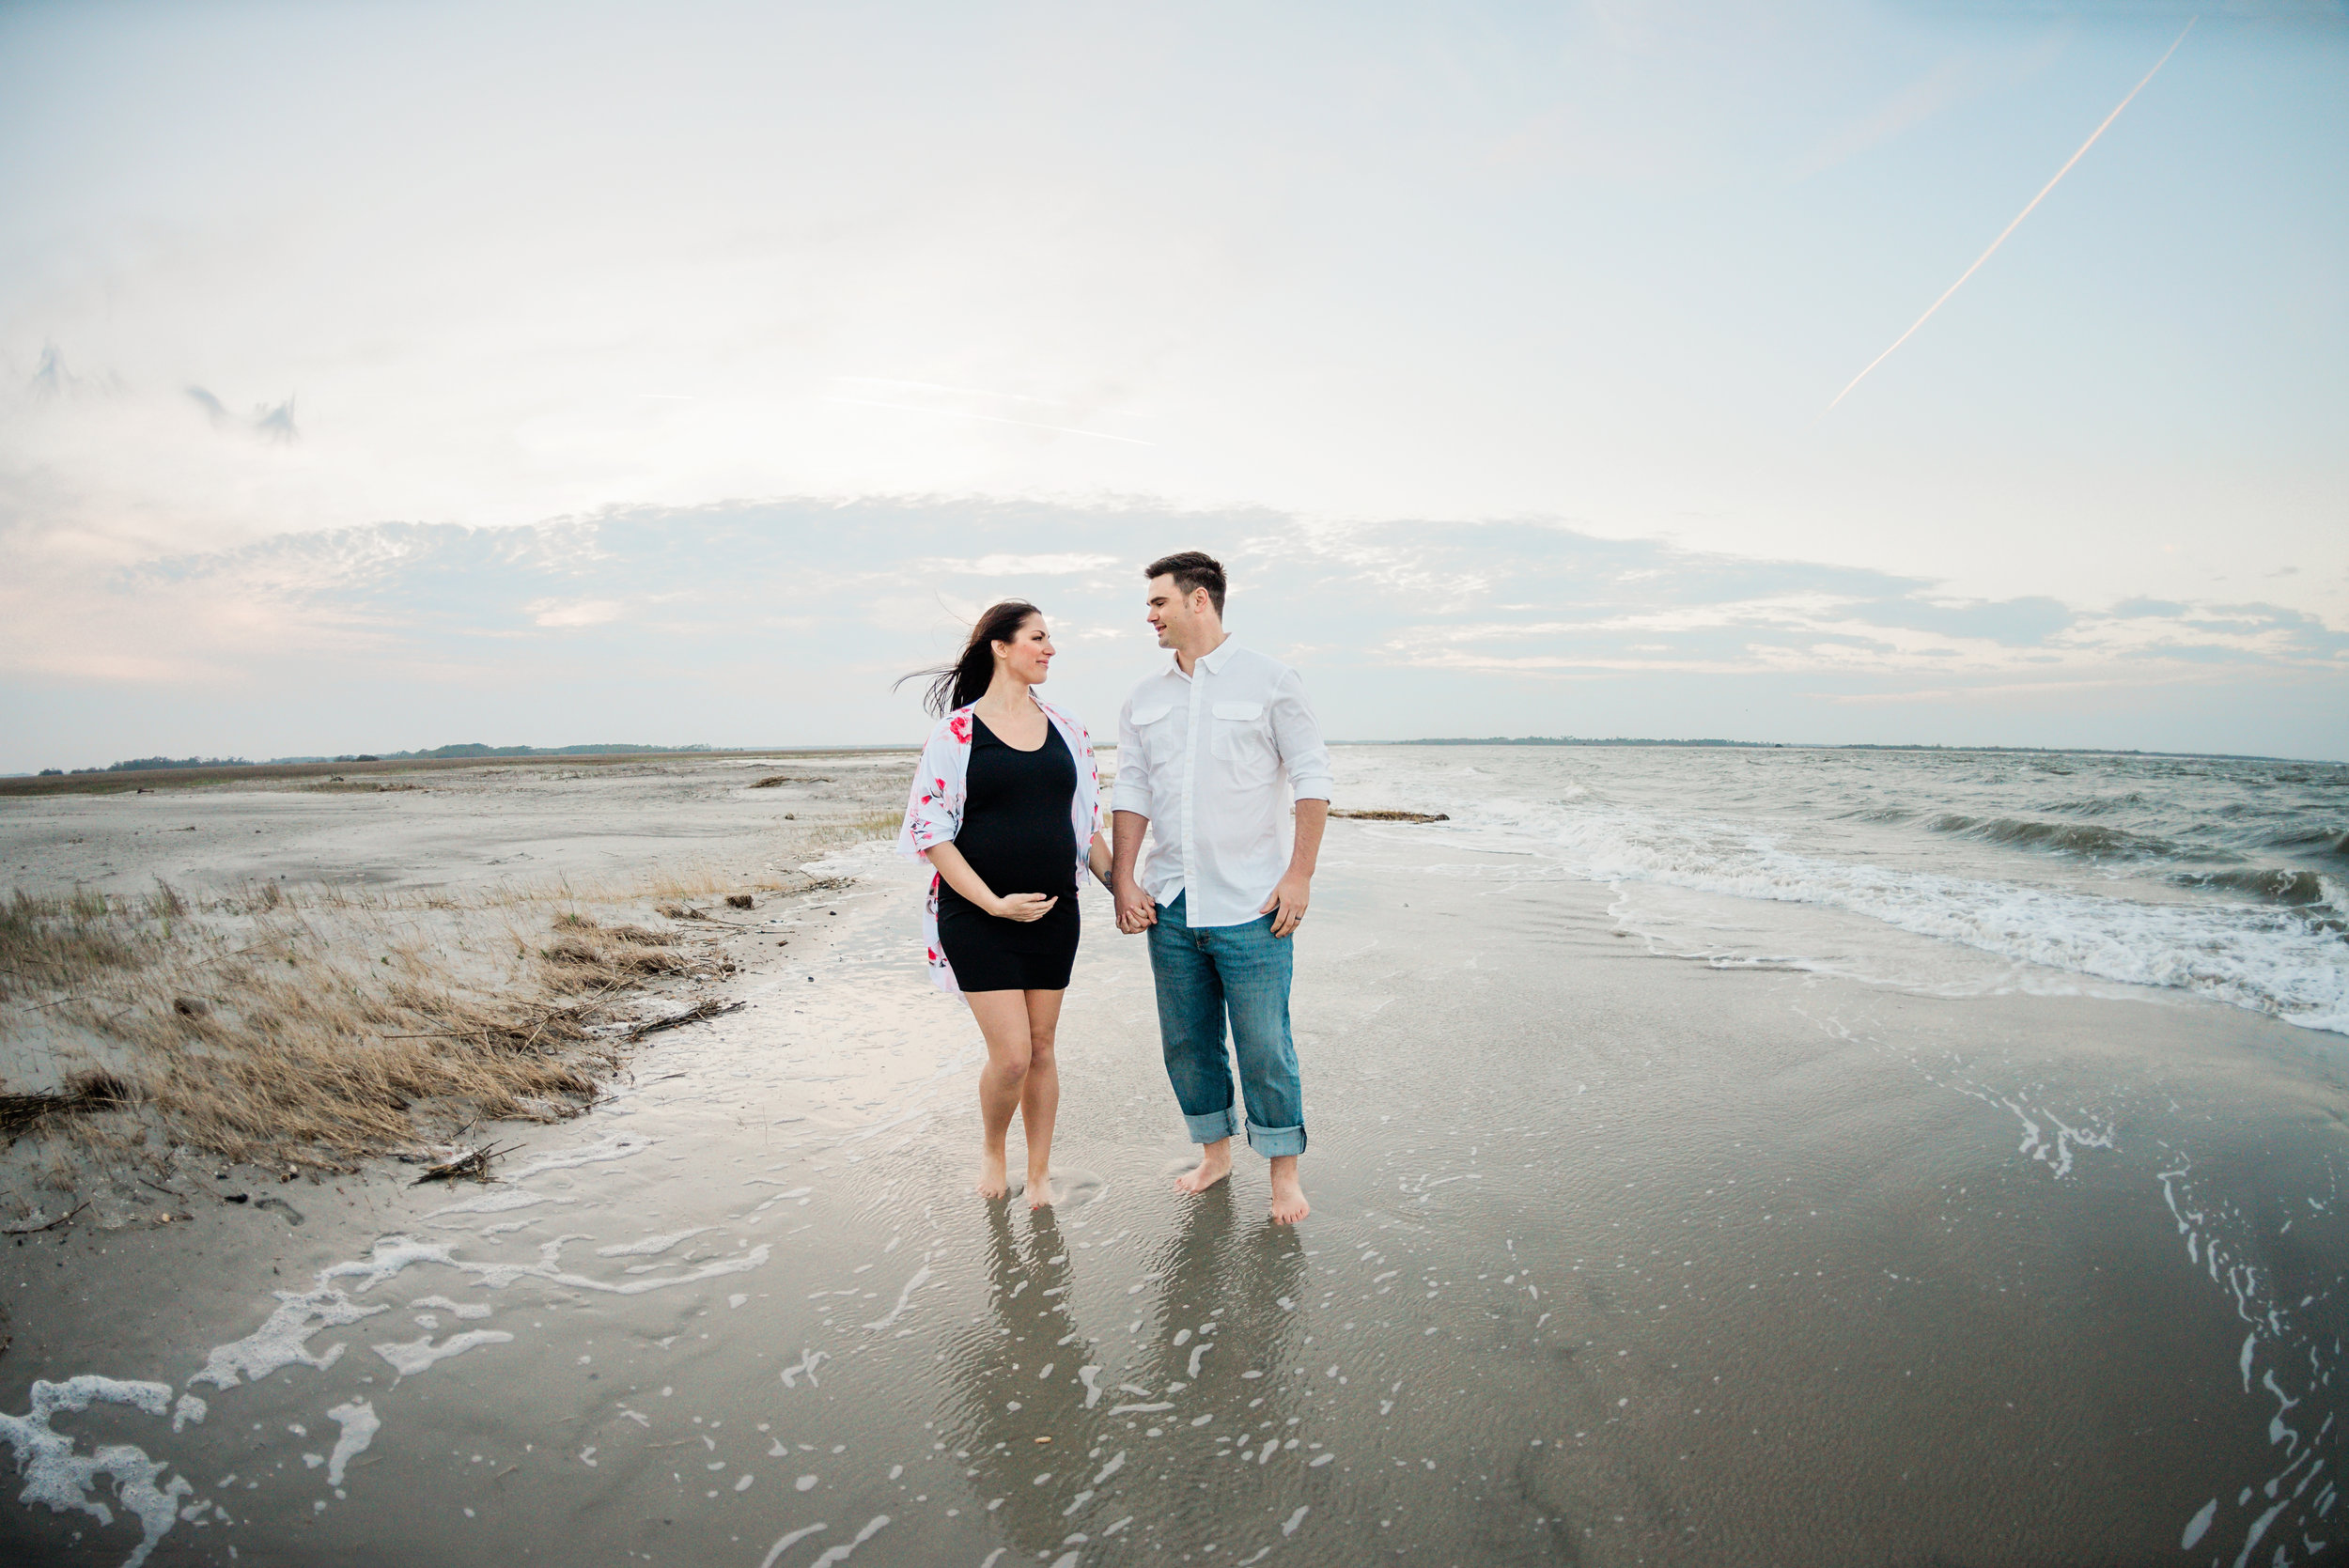 Folly-Beach-Maternity-Photographer-Following-Seas-Photography-2105 copy.jpg